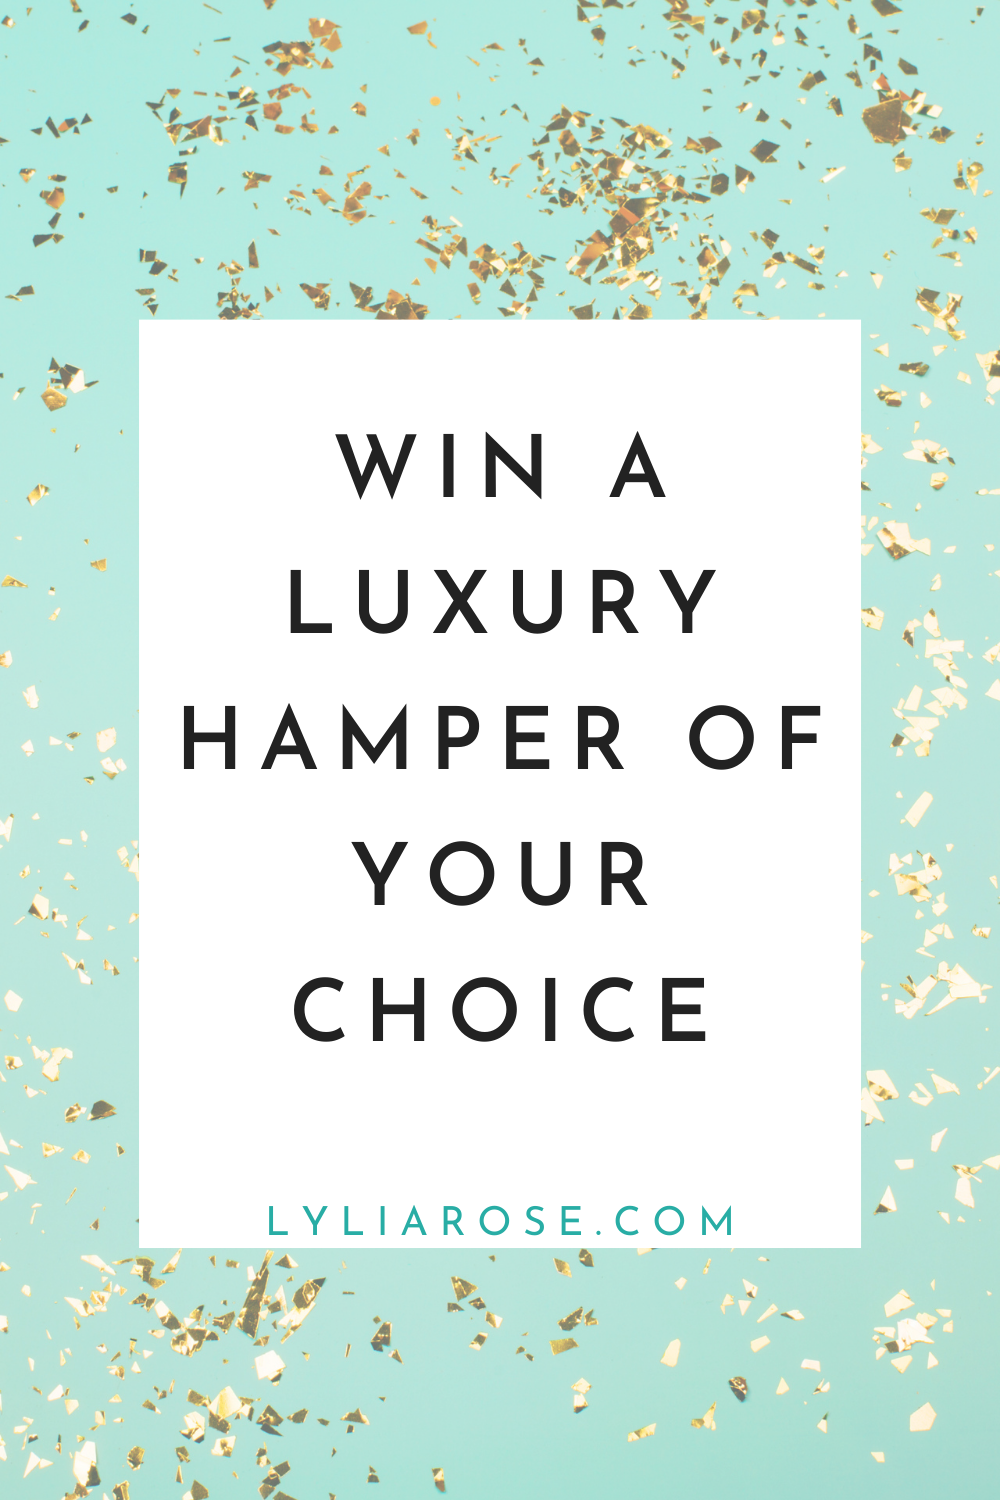 Win a luxury hamper of your choice